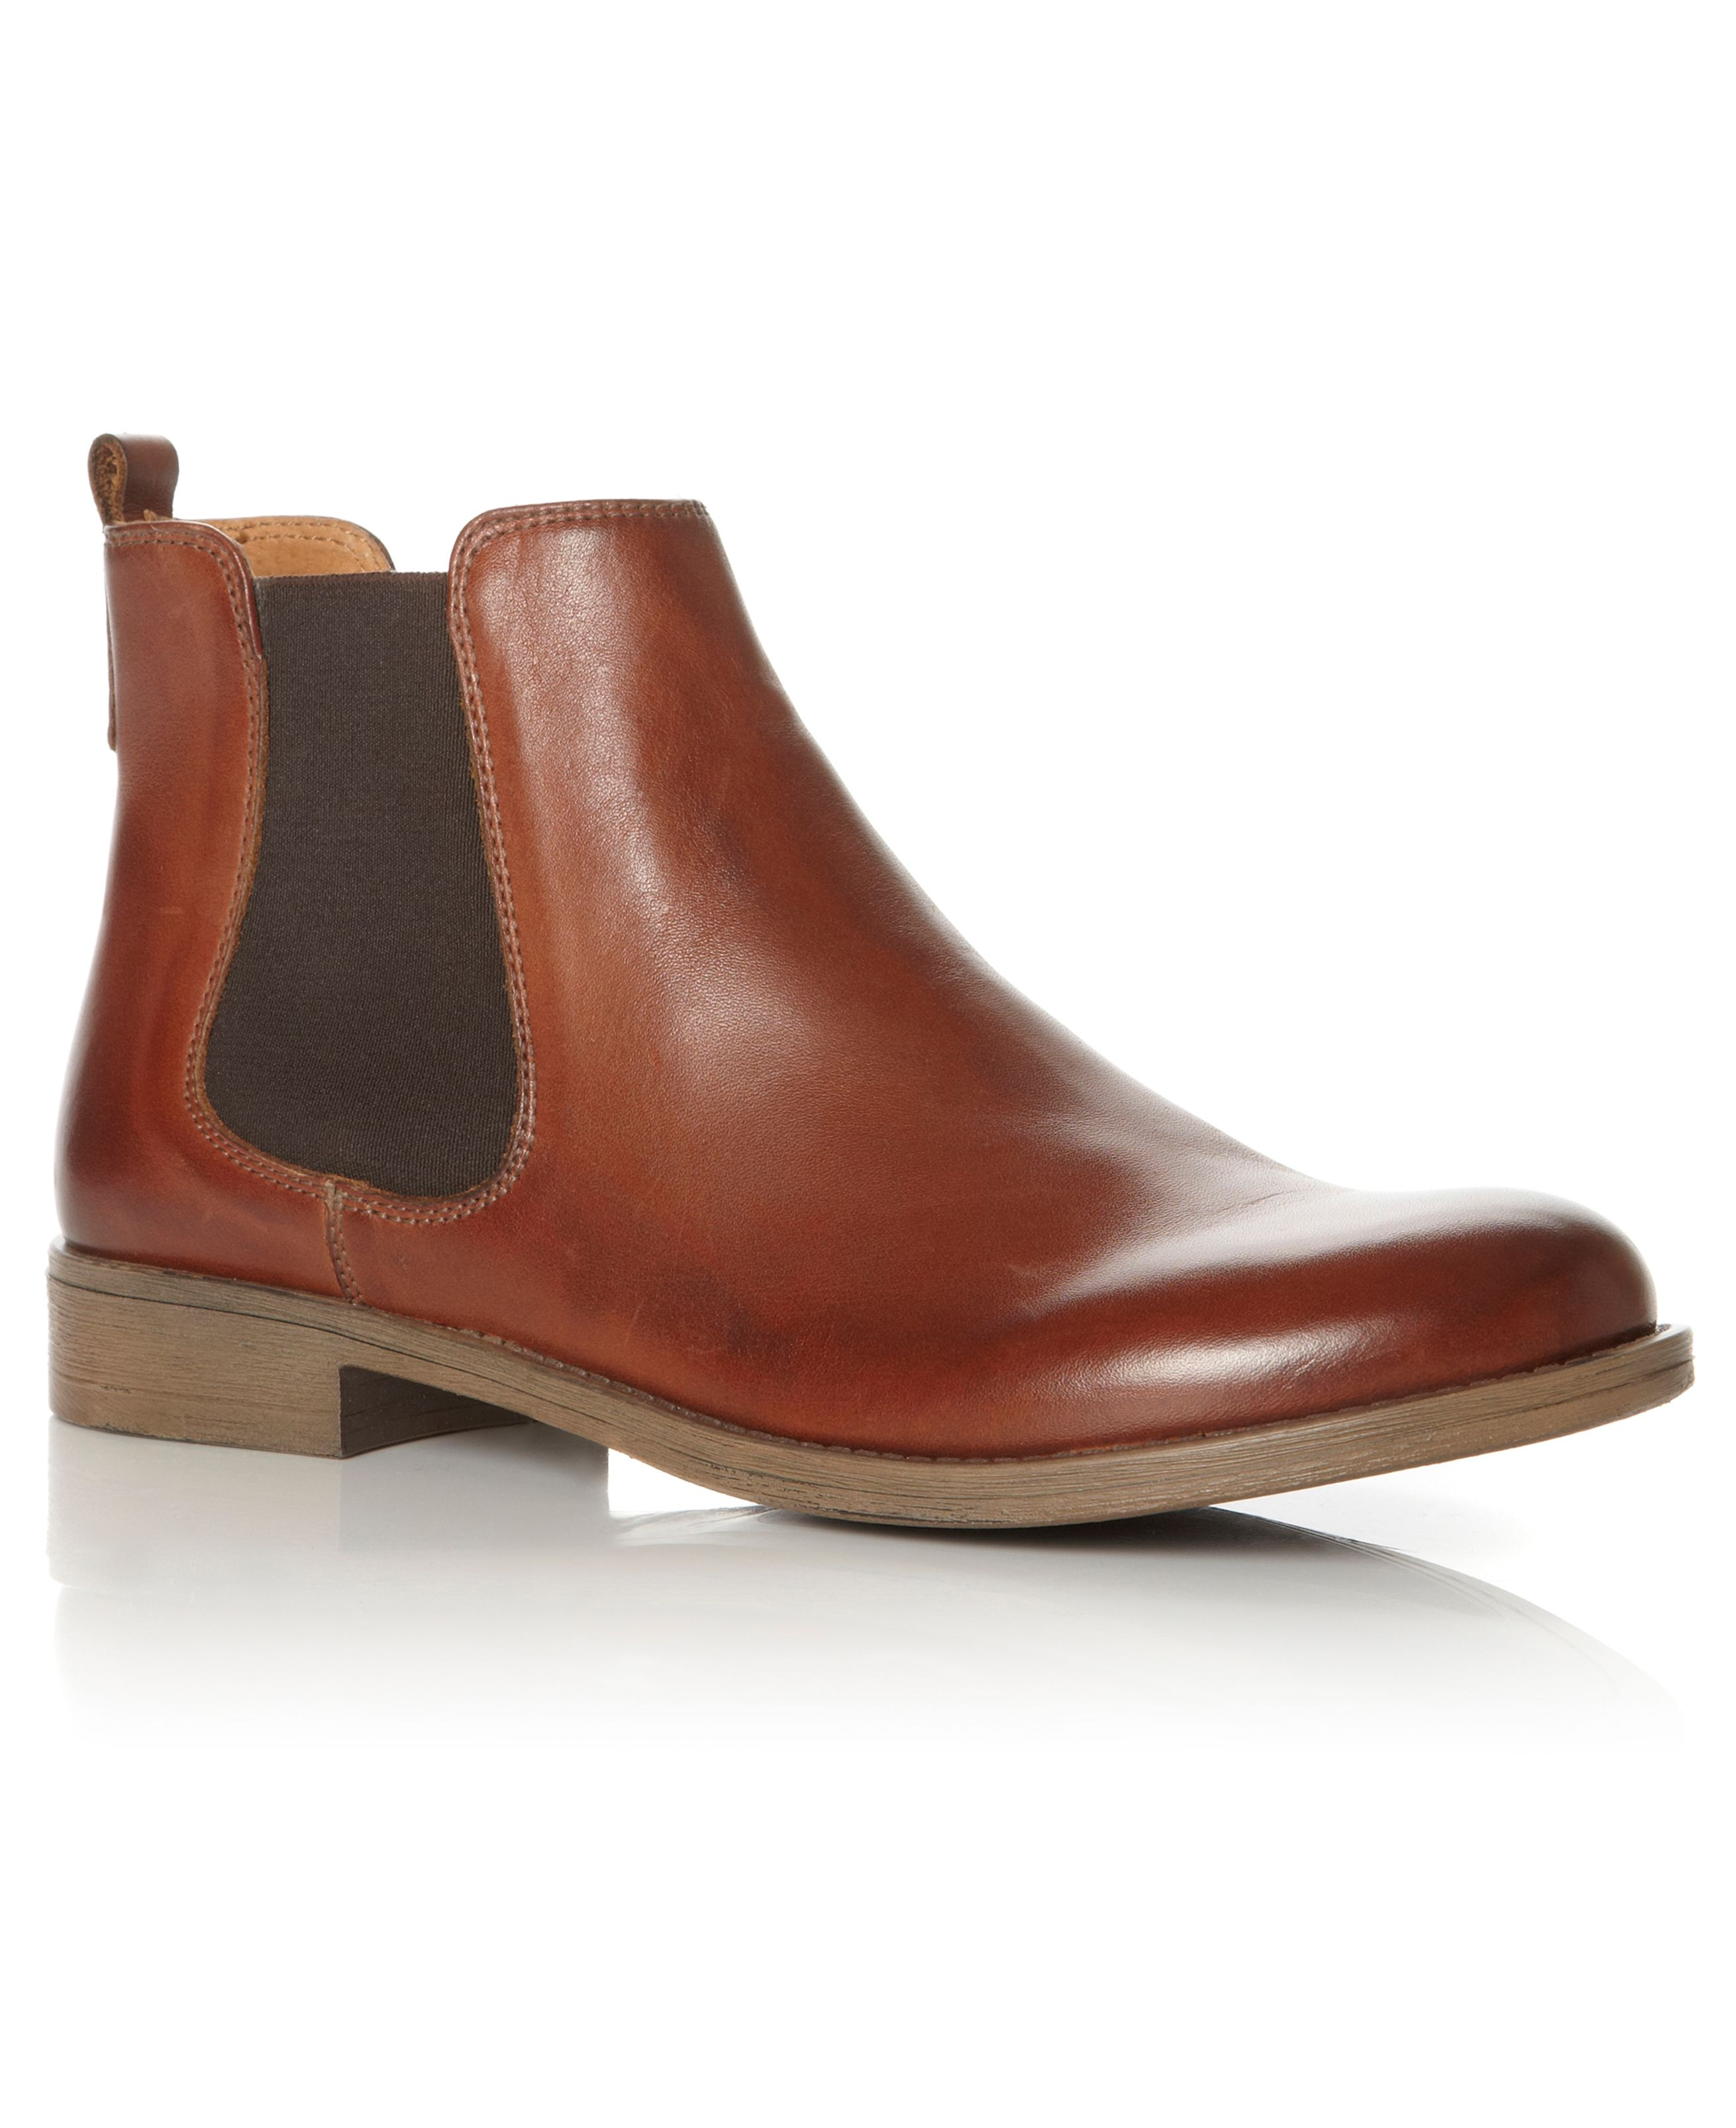 Shoes Dune Paddys Leather Chelsea Boot, Tan